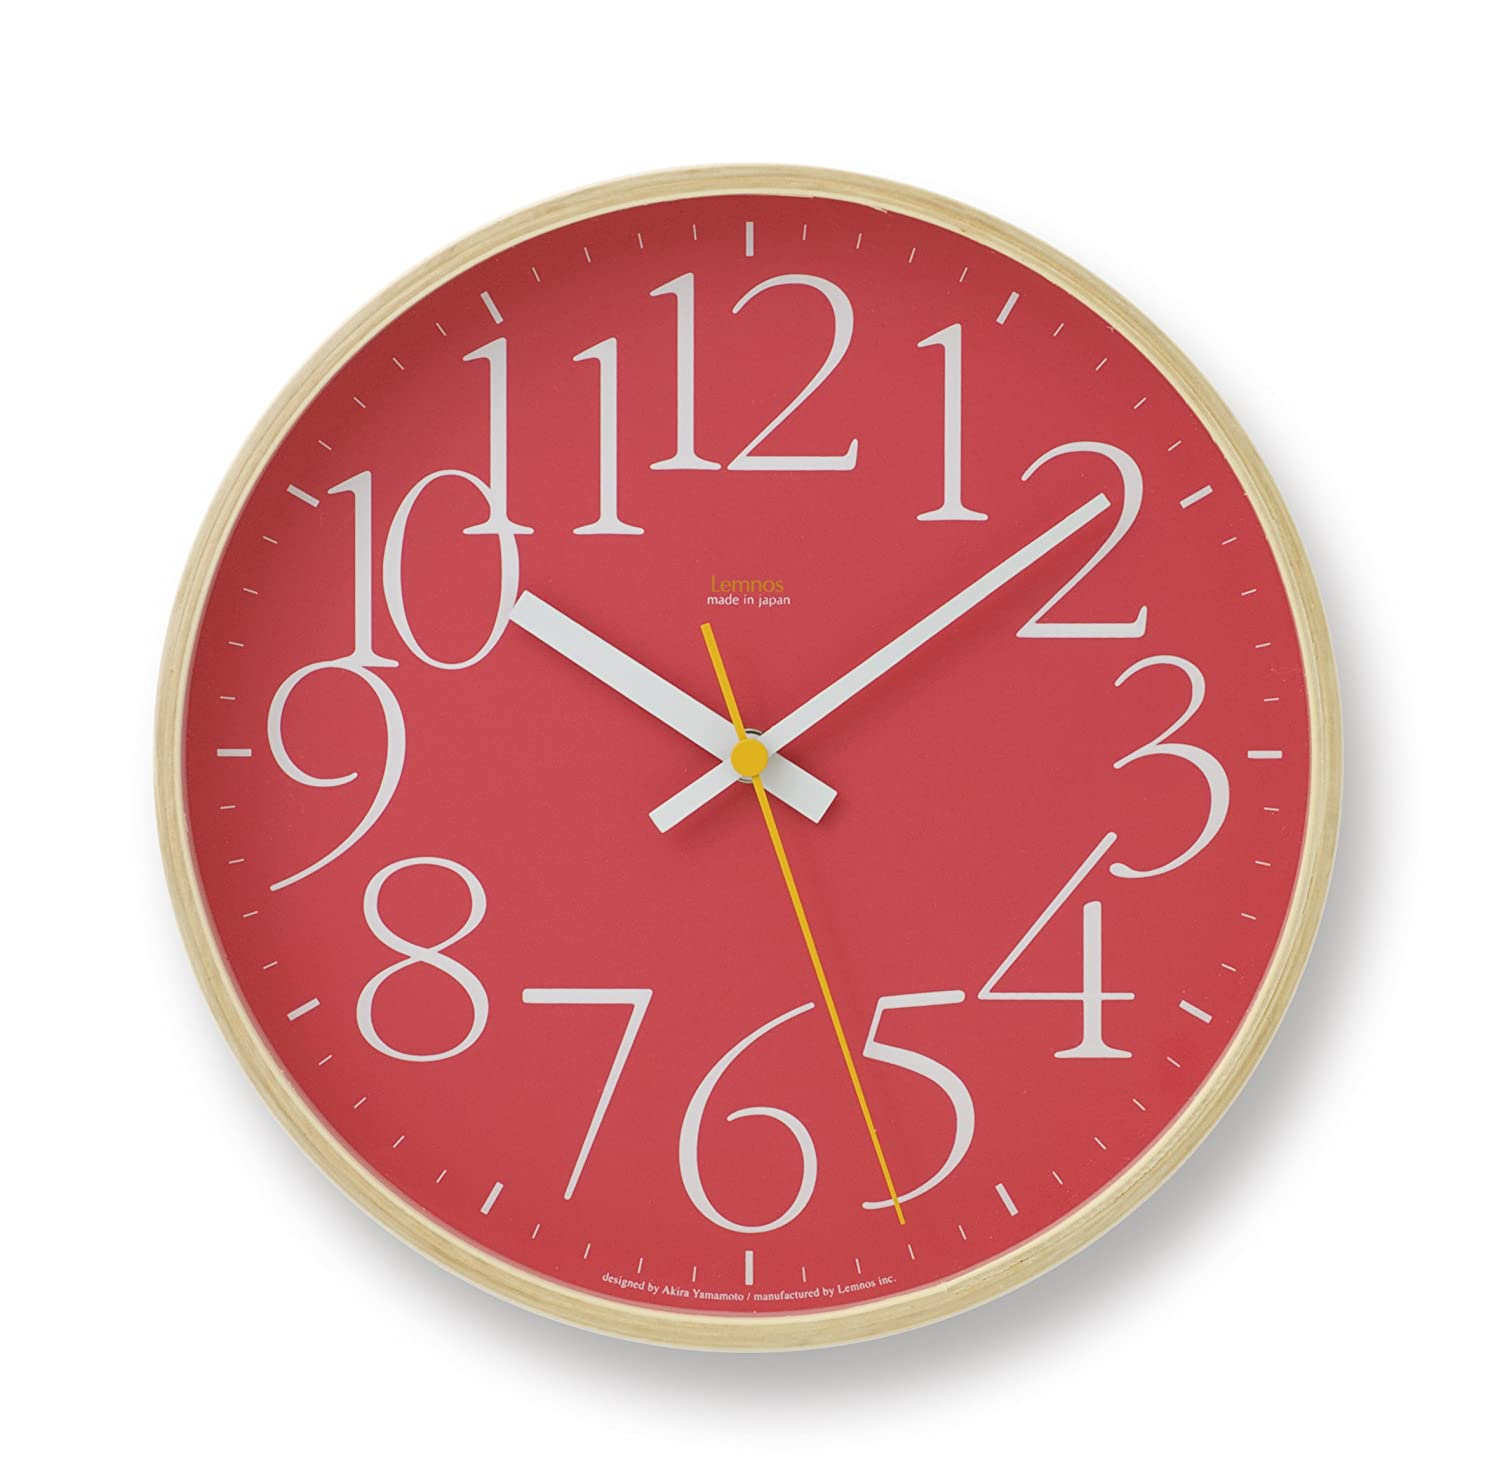 Lemnos AY clock レッド LC09-17 RE B002XZBYPA レッド レッド